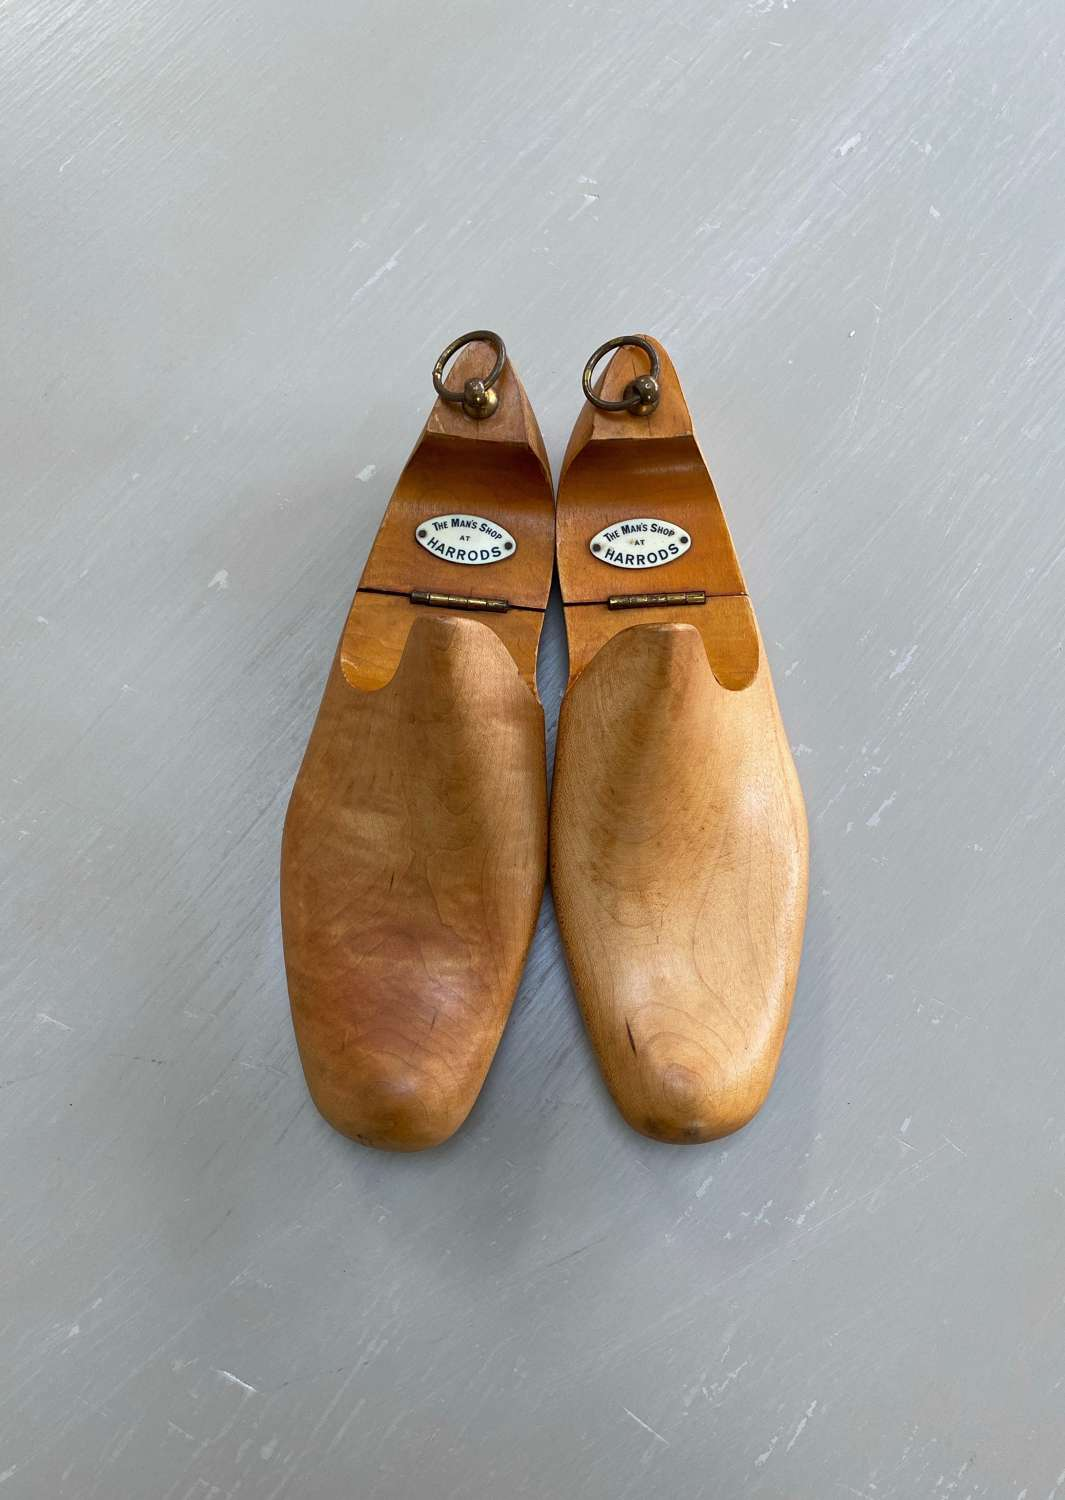 1940s Mens Wooden Shoe Trees Size 8 - Harrods